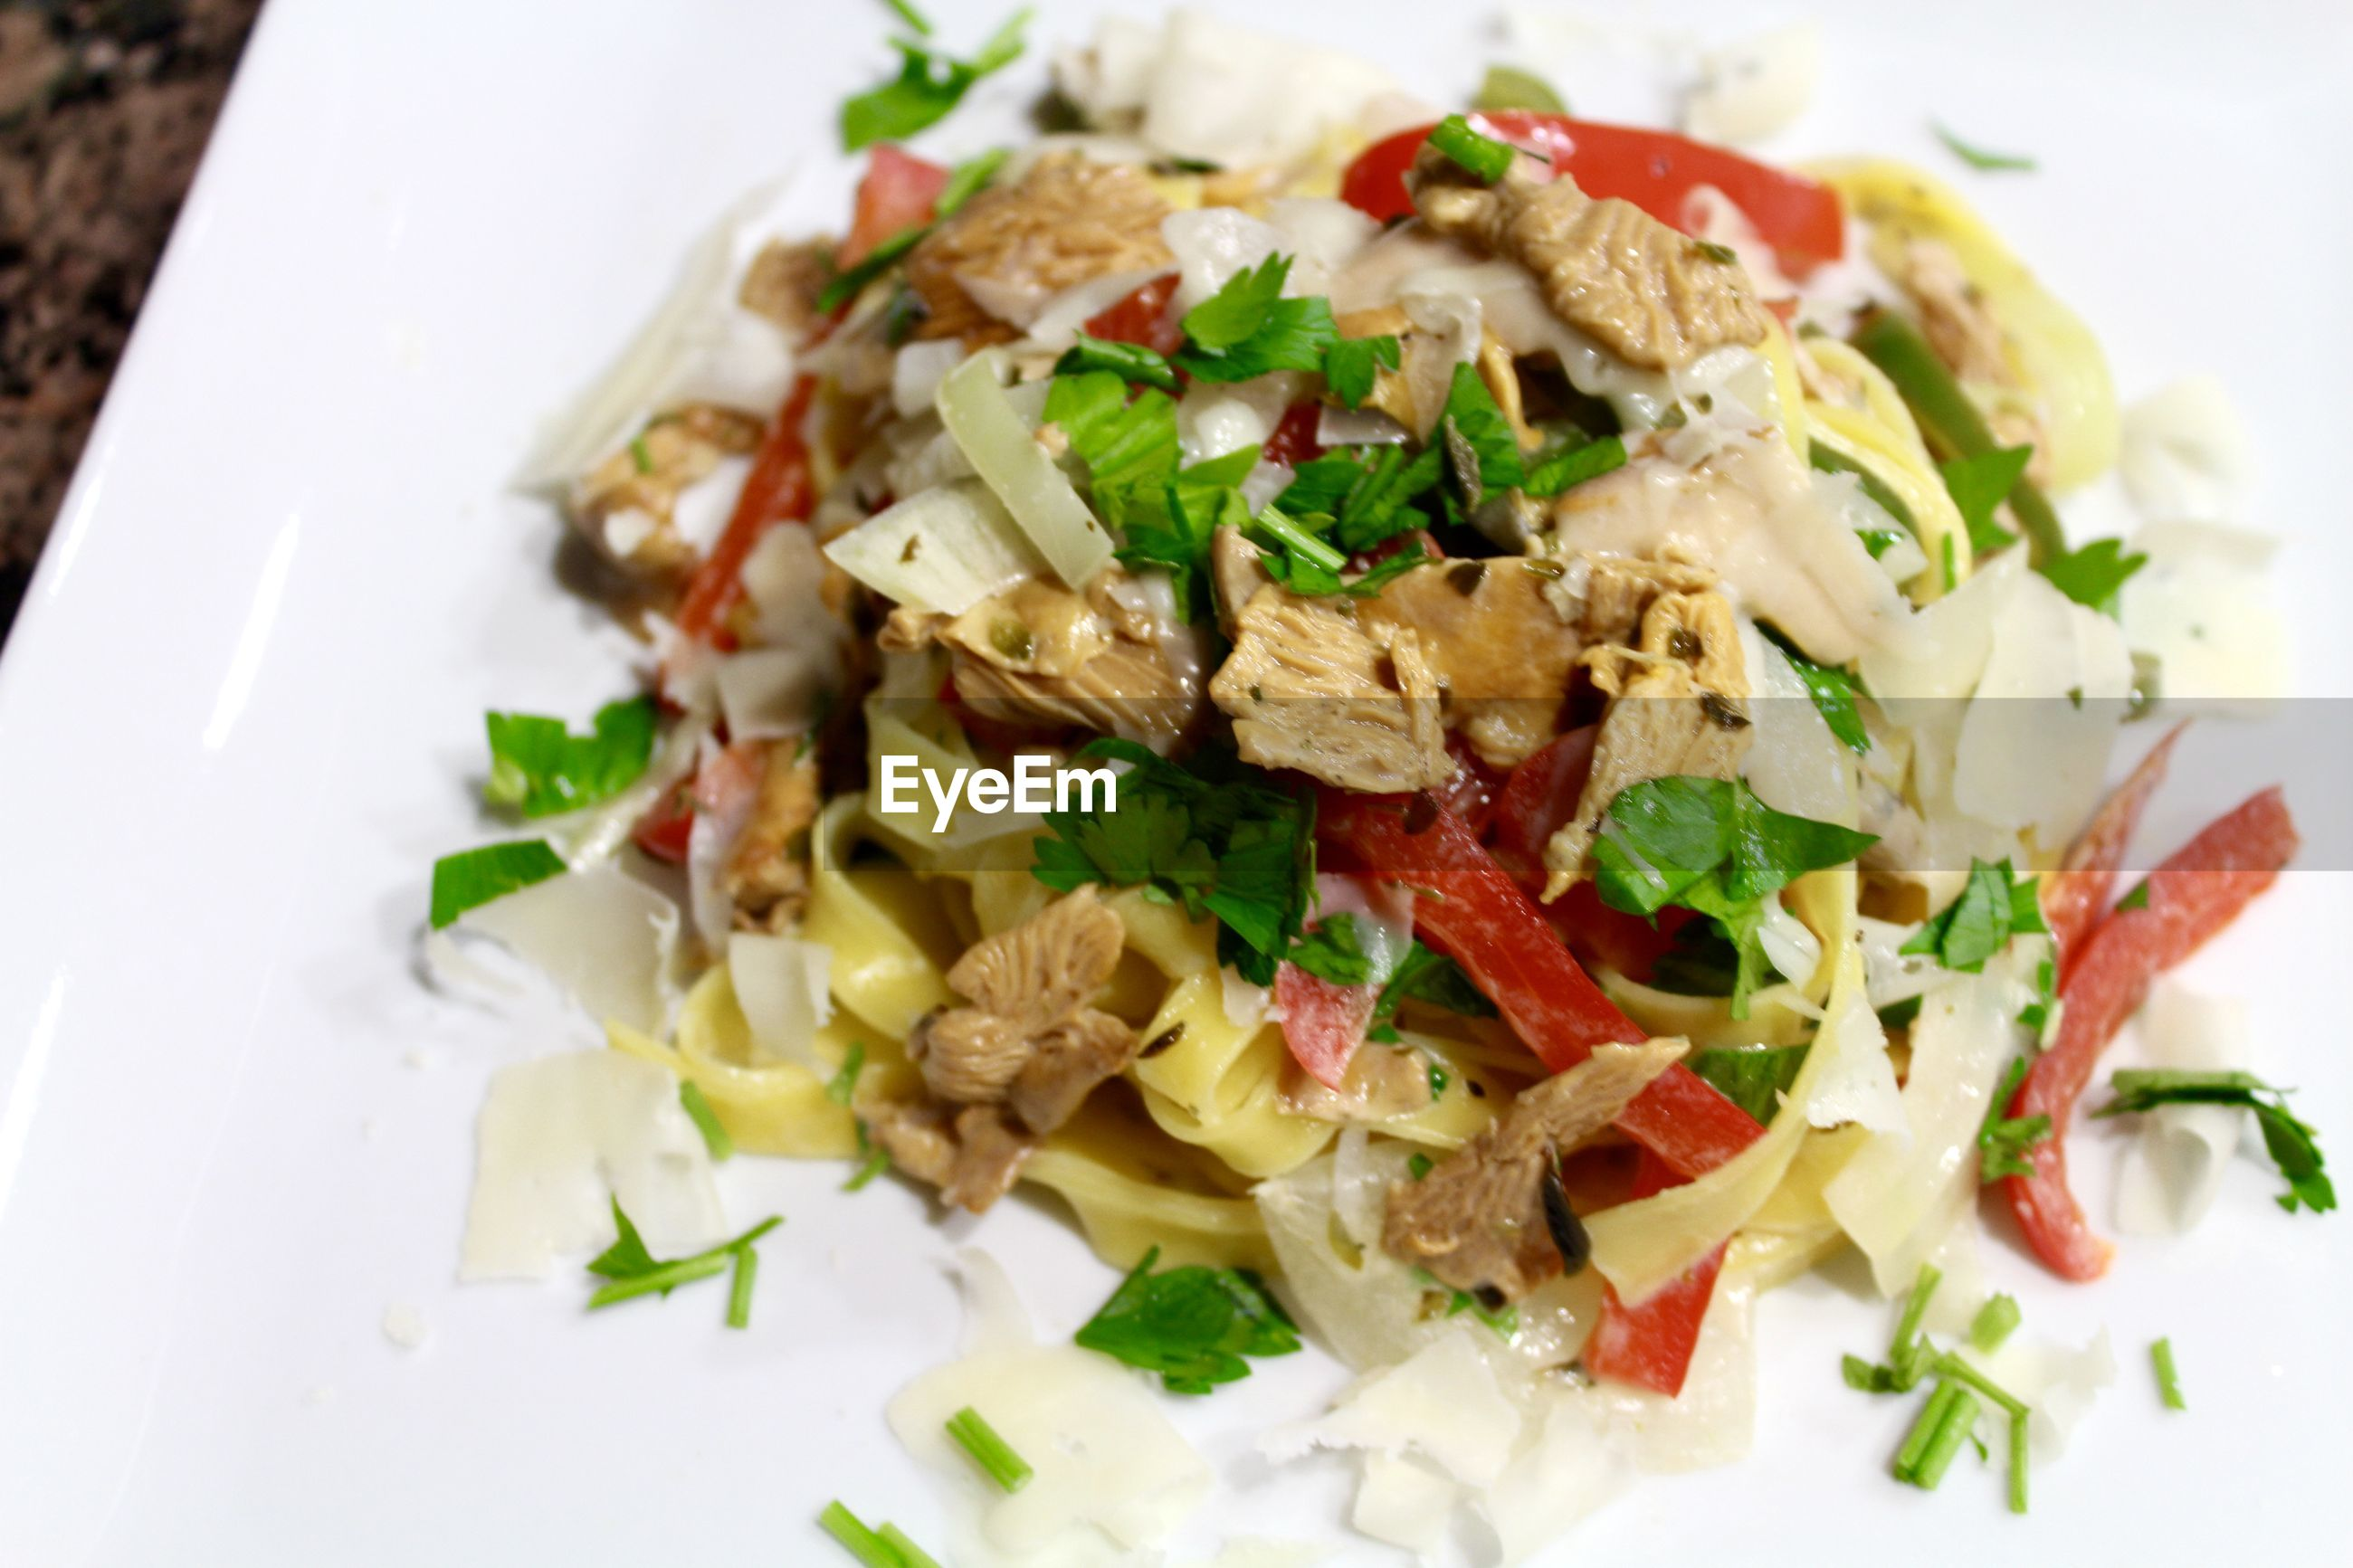 High angle view of pasta with vegetables in plate